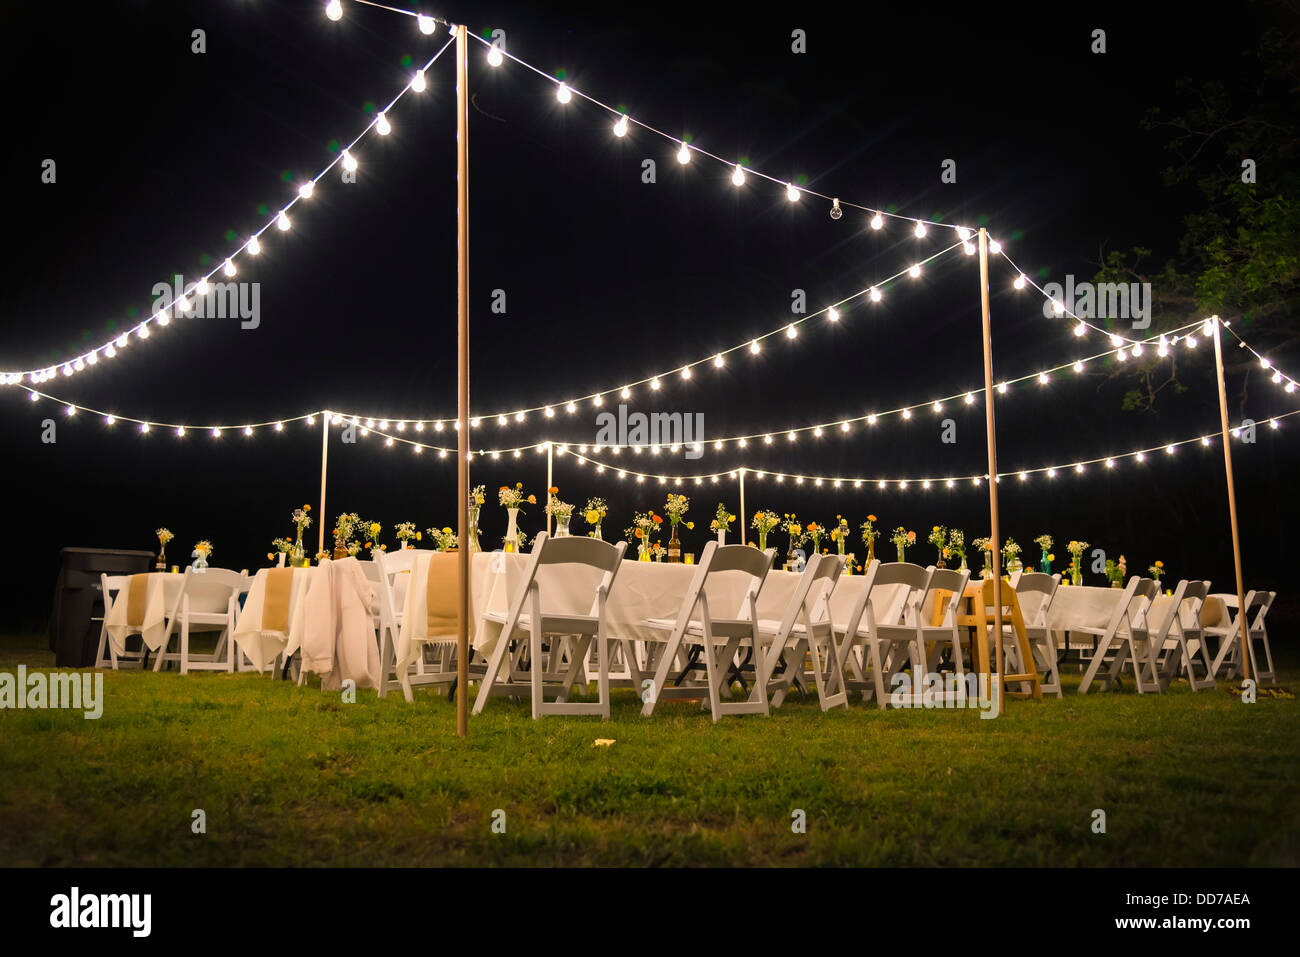 Usa texas outdoor wedding reception with party lights at night usa texas outdoor wedding reception with party lights at night workwithnaturefo